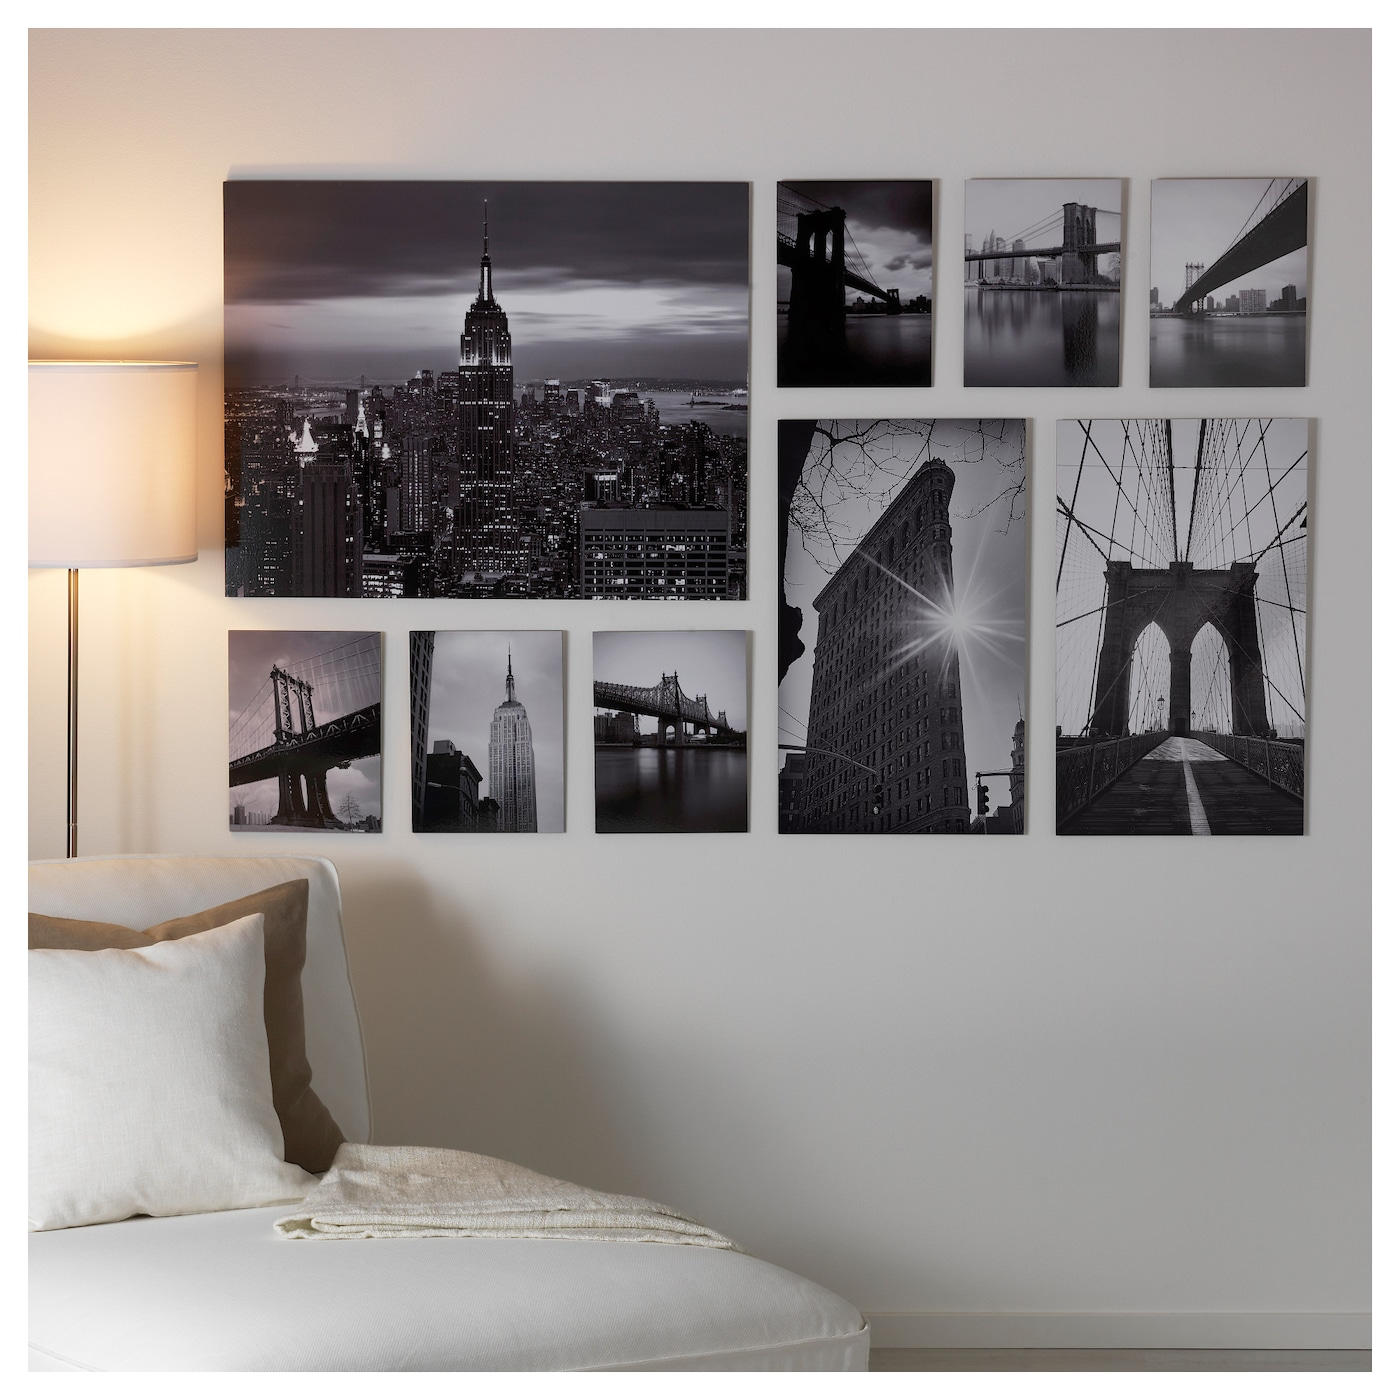 Ikea Orlando Large Family Showroom Scenario: GRÖNBY Picture, Set Of 9 Sights Of The City 179 X 112 Cm